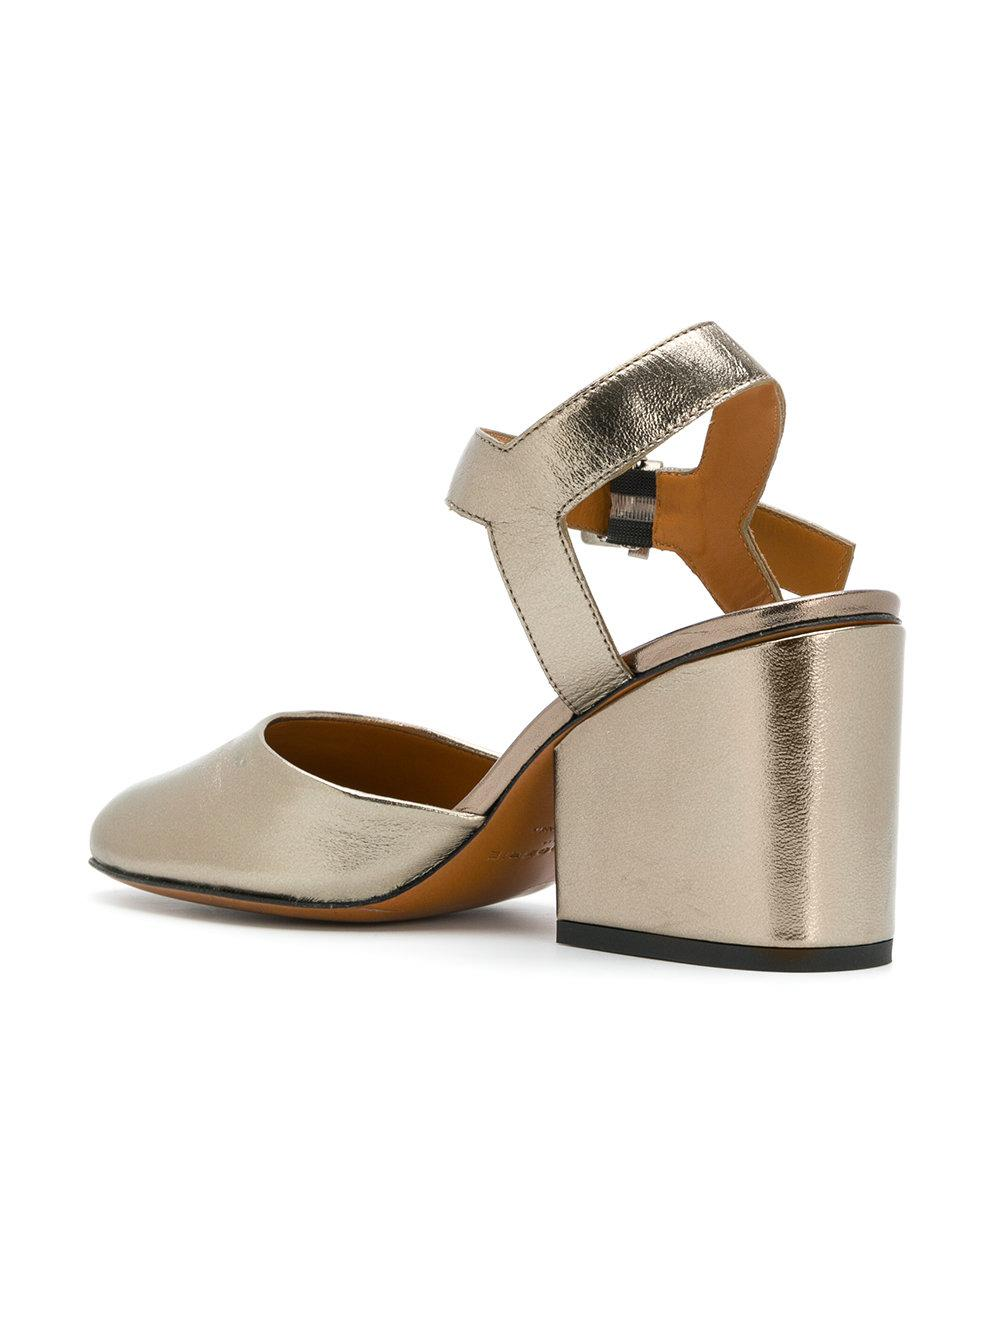 cheapest price outlet fake Clergerie Kaby block heel sandals sale brand new unisex buy cheap wiki new styles cheap price wGvzod